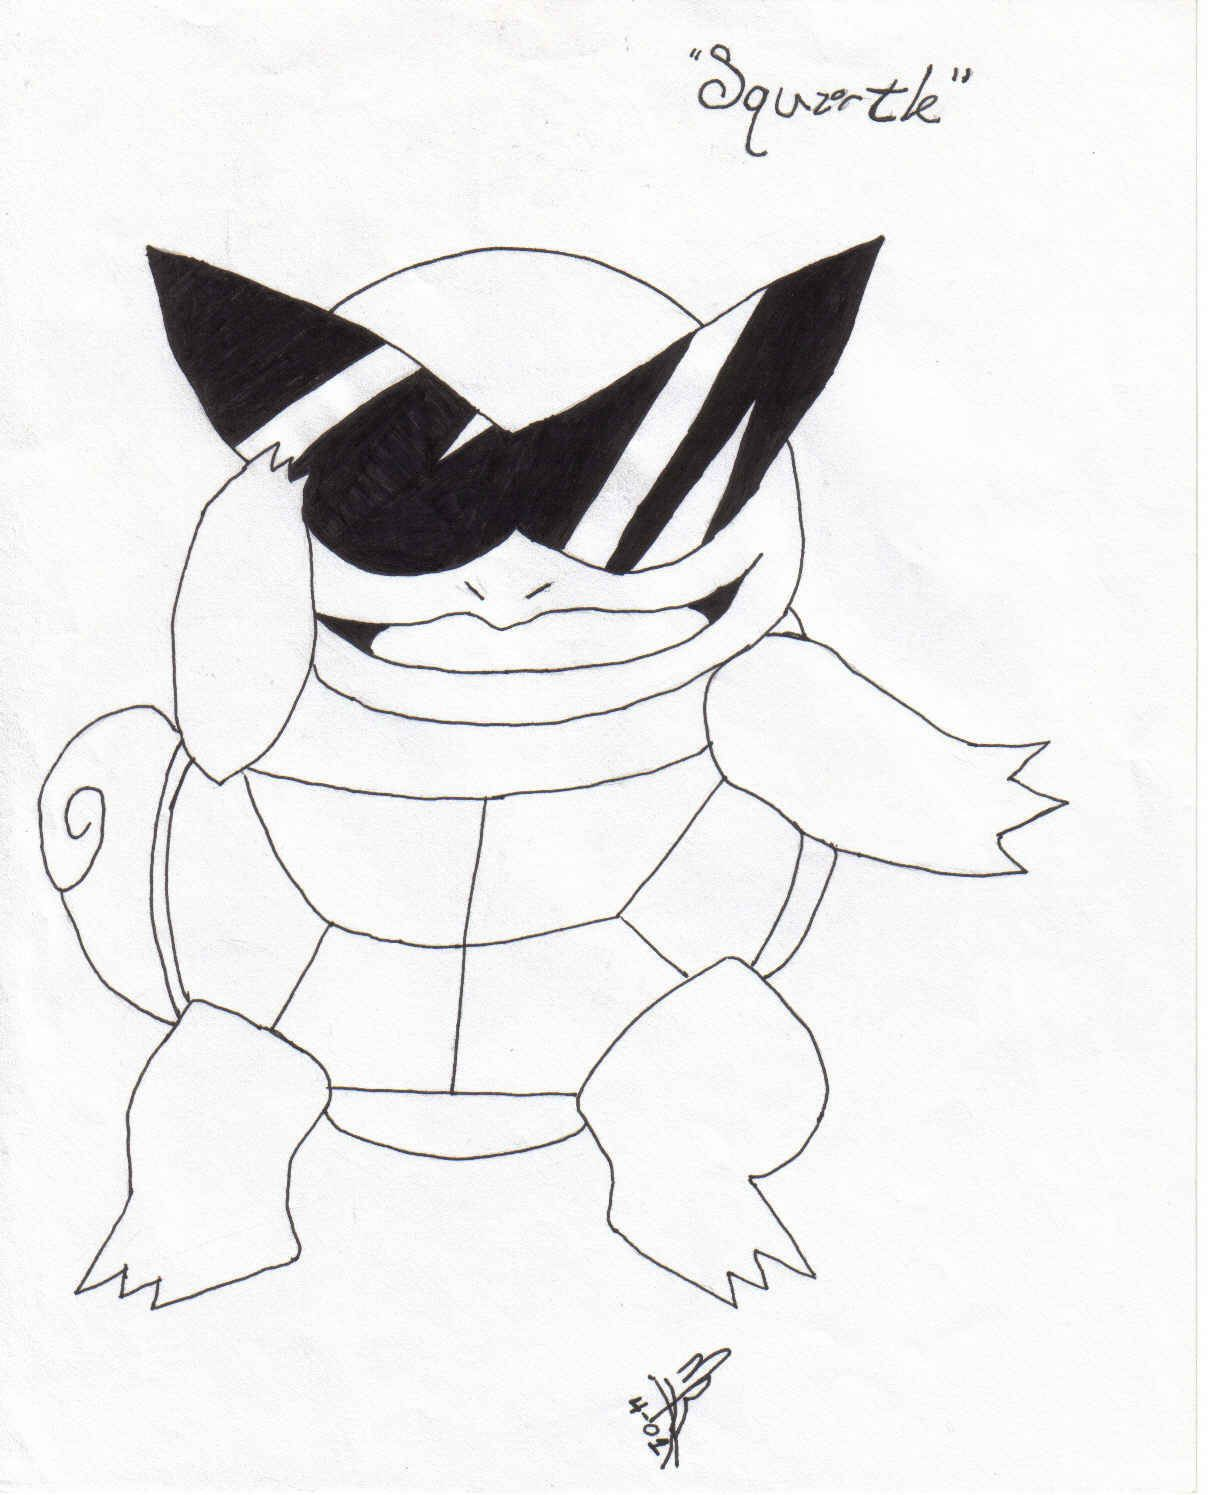 Squirtle Pokemon Coloring Page Youngandtae Com In 2020 Pokemon Coloring Pages Pokemon Coloring Coloring Pages